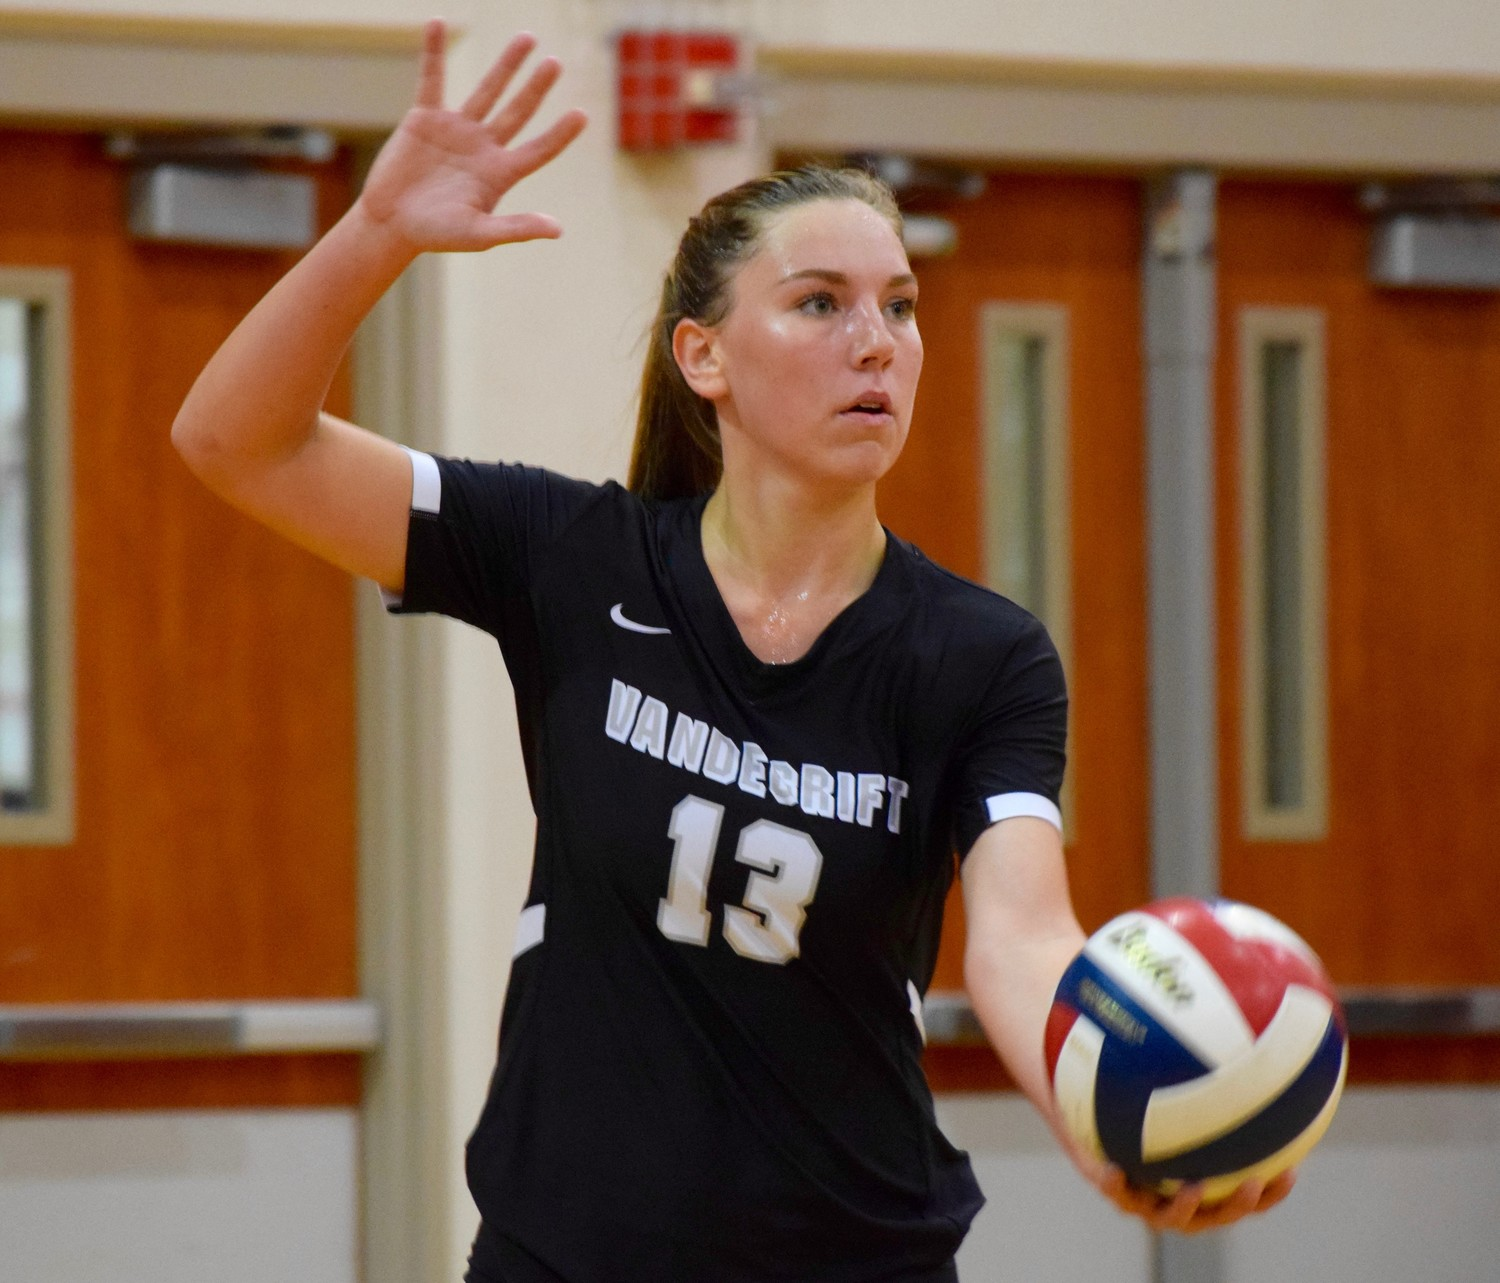 Brynne Wright and Vandegrift were swept by Vista Ridge 3-0 (25-15, 25-22, 25-17) on Tuesday night.